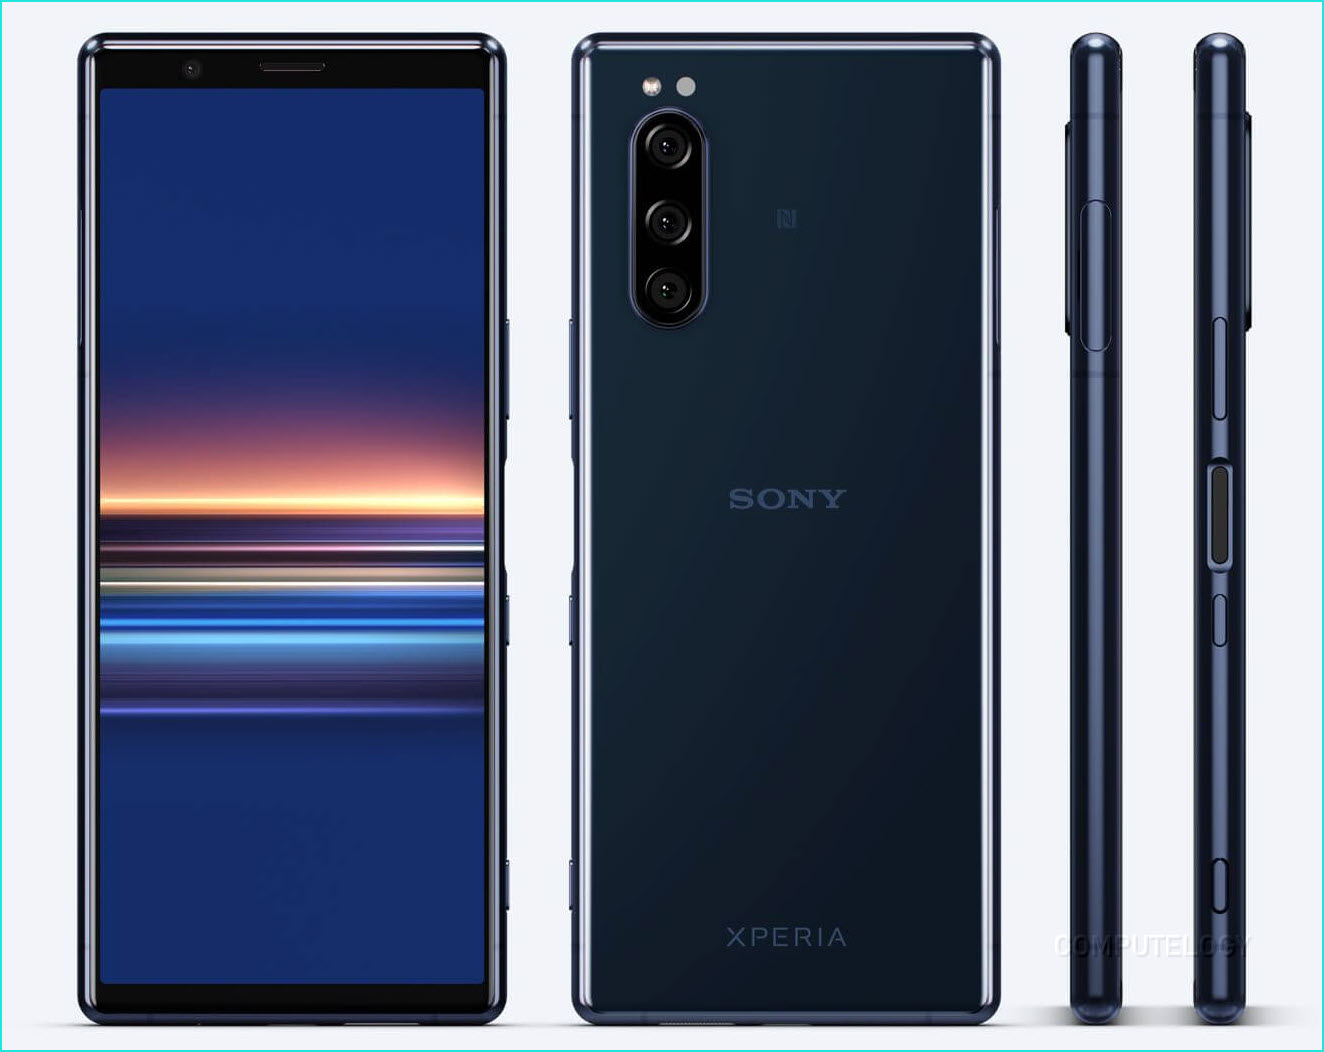 Sony Xperia 5 Smartphone Specifications